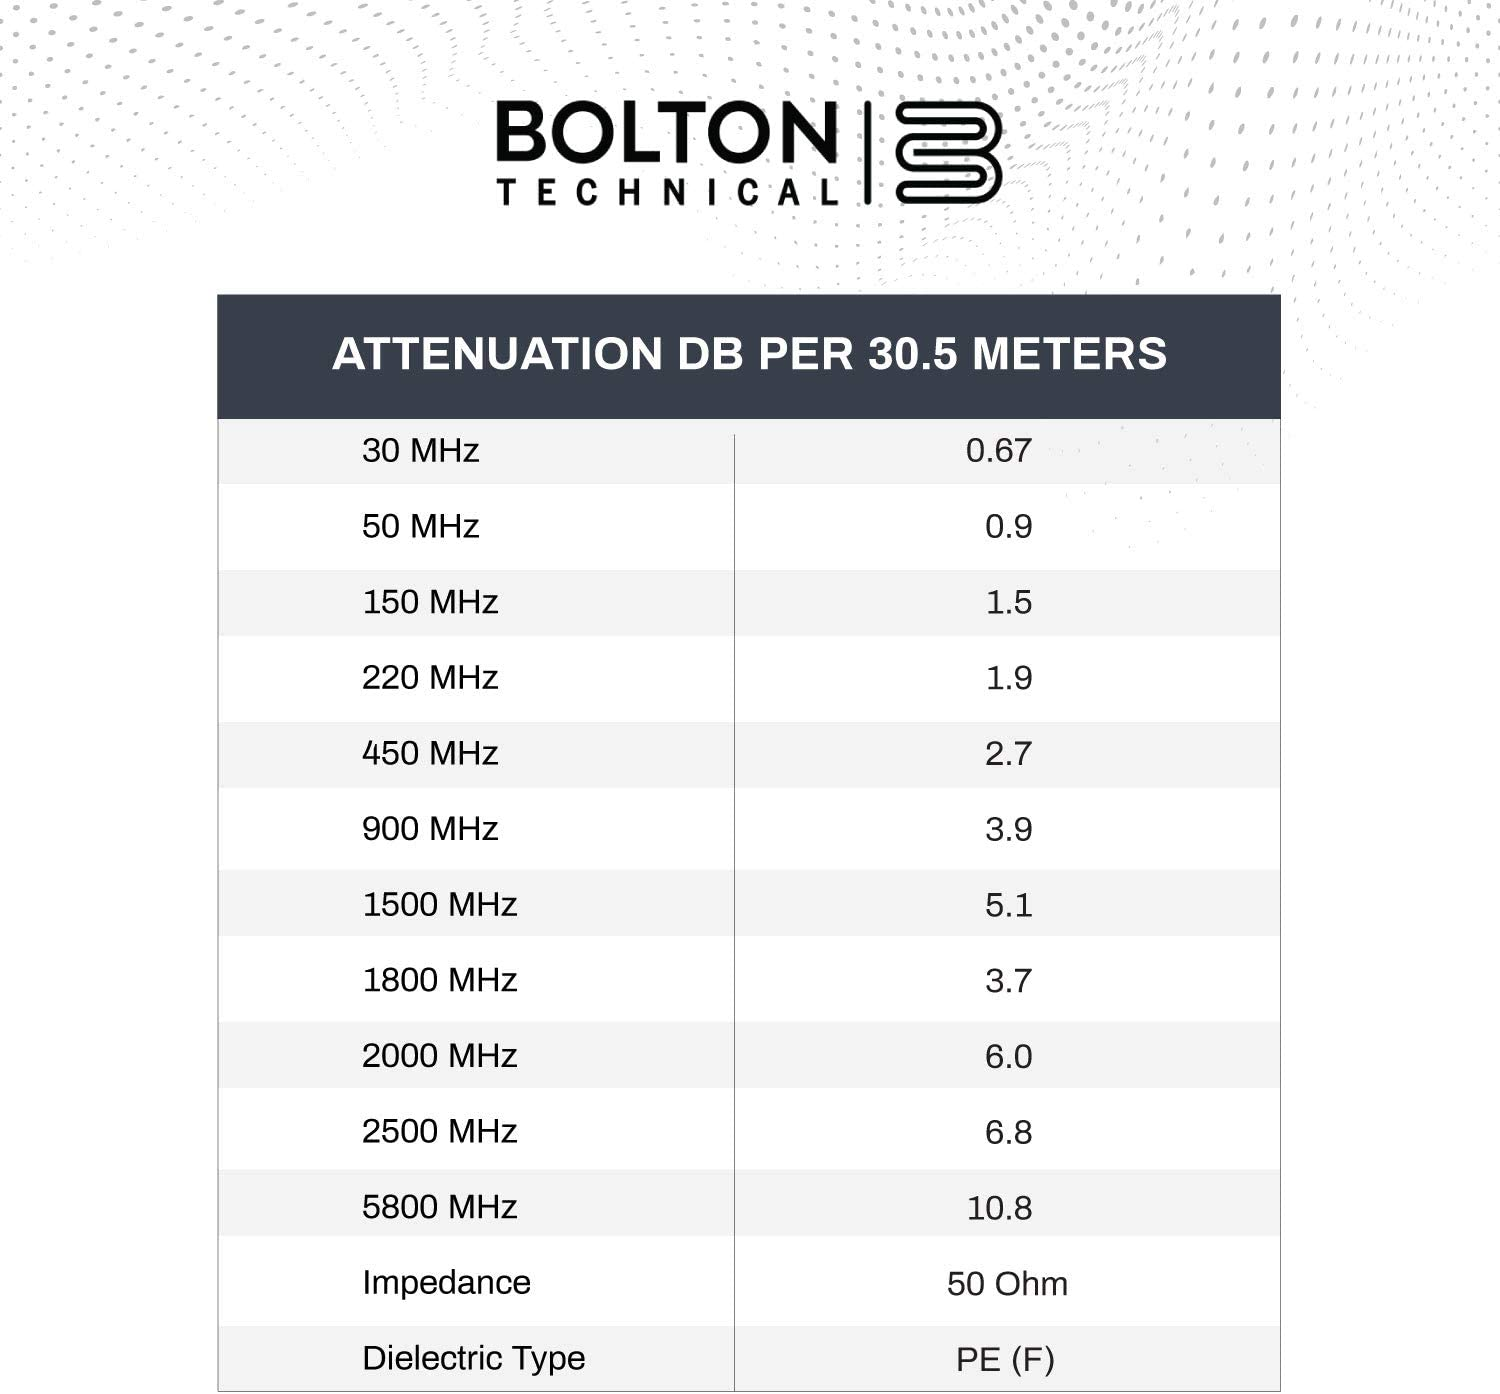 Bolton400 -LMR400 Equivalent Coaxial Cable 100ft - Heavy Duty Ultra Low Loss Coax Cable 50ohm - N Male to N Male - 100 feet Black - for Home and Commercial Signal Booster Installations: Industrial & Scientific